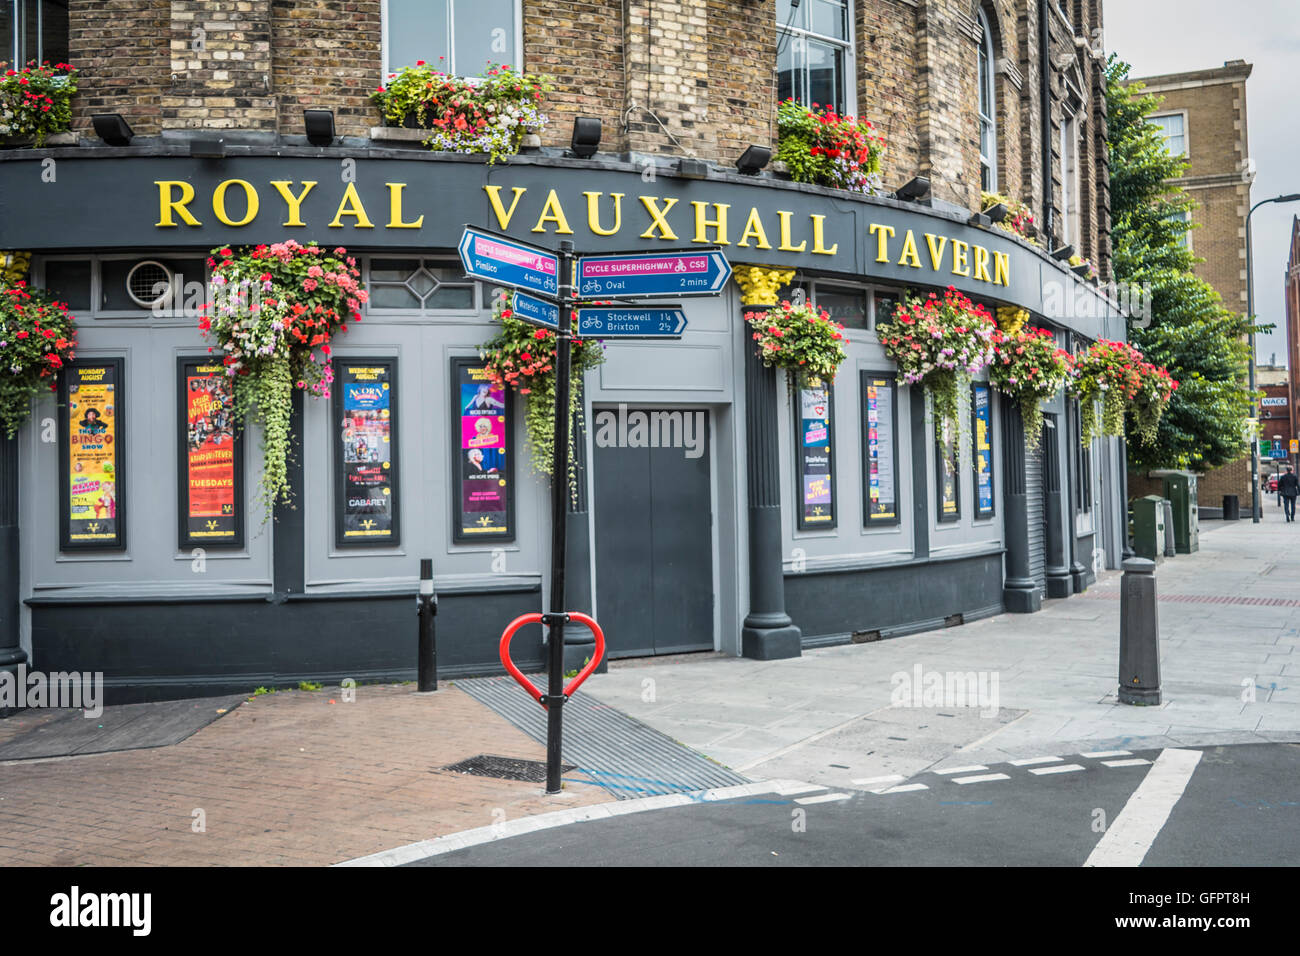 Exterior of the iconic gay pub the Royal Vauxhall Tavern in Lambeth, London, SE1. Stock Photo